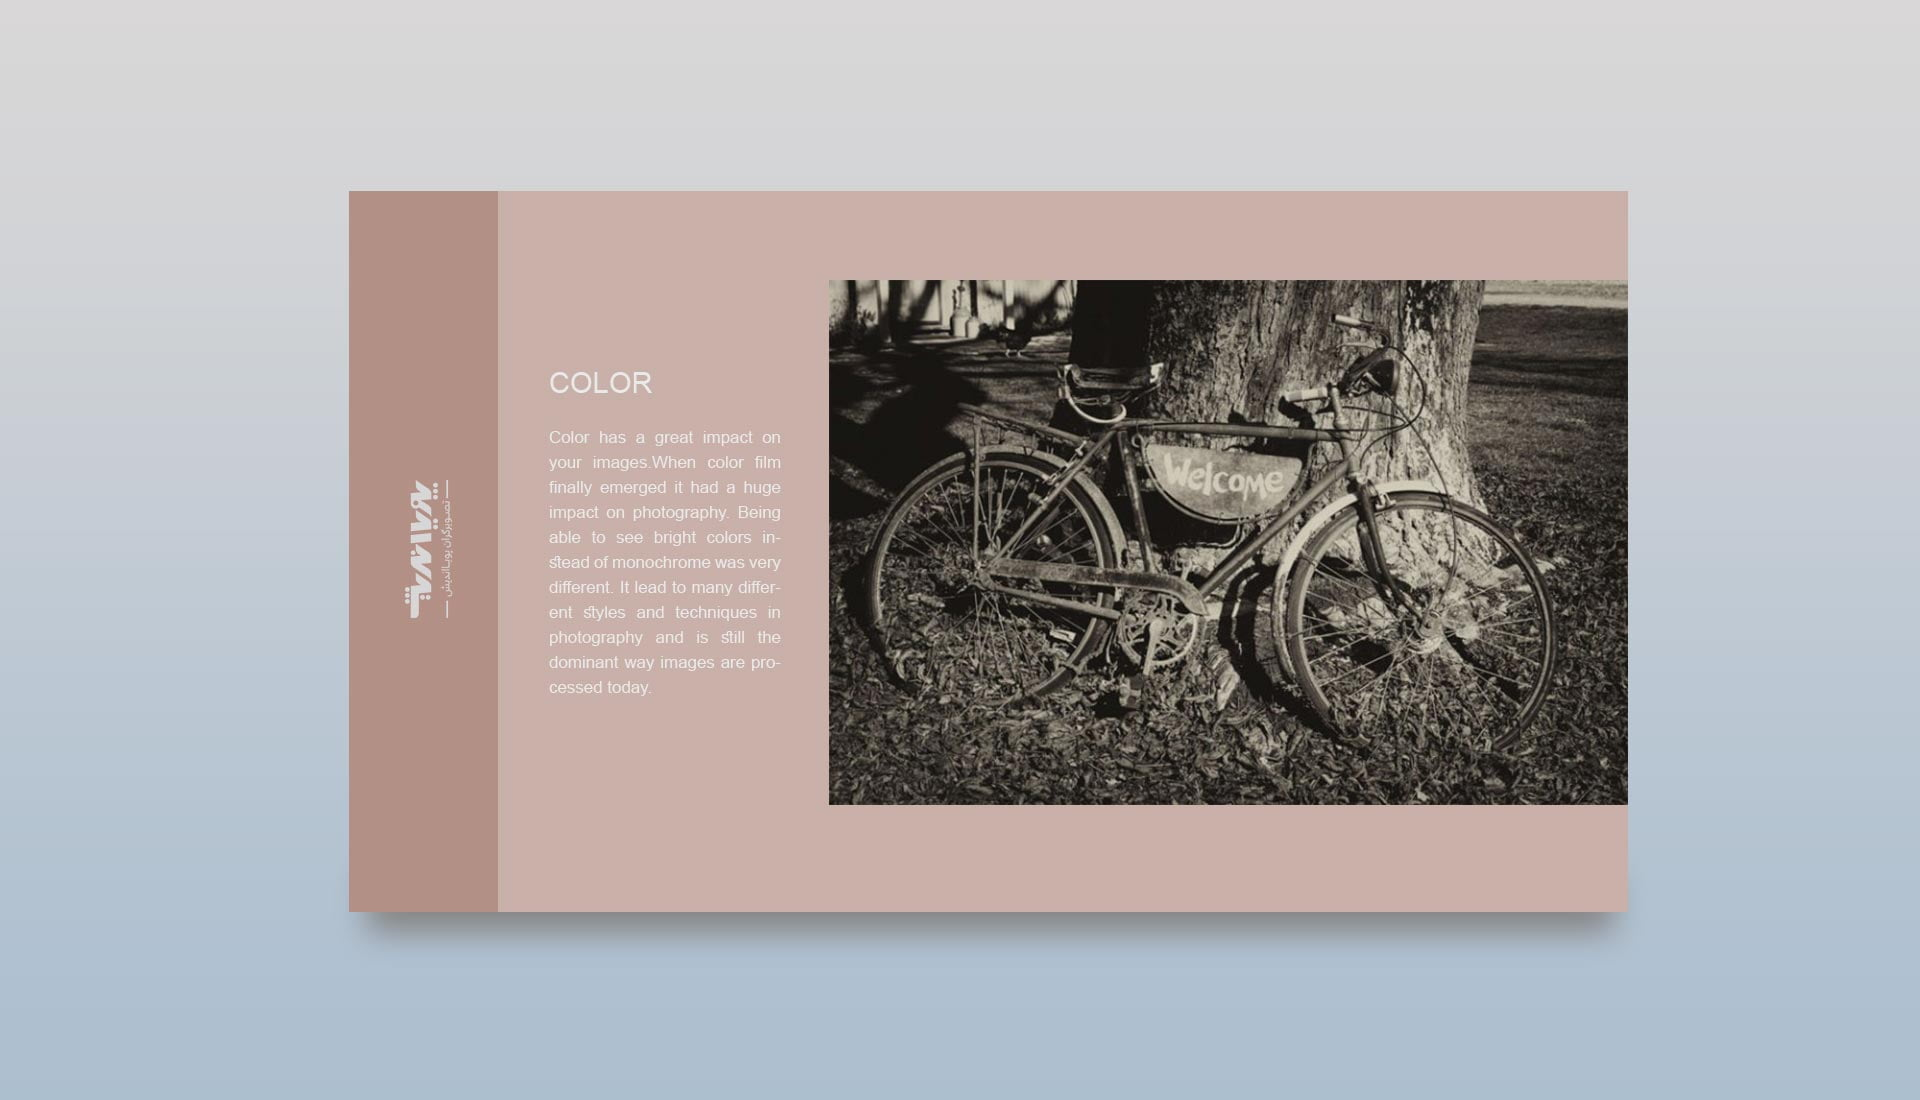 color in photography 1 - تعادل در عکاسی